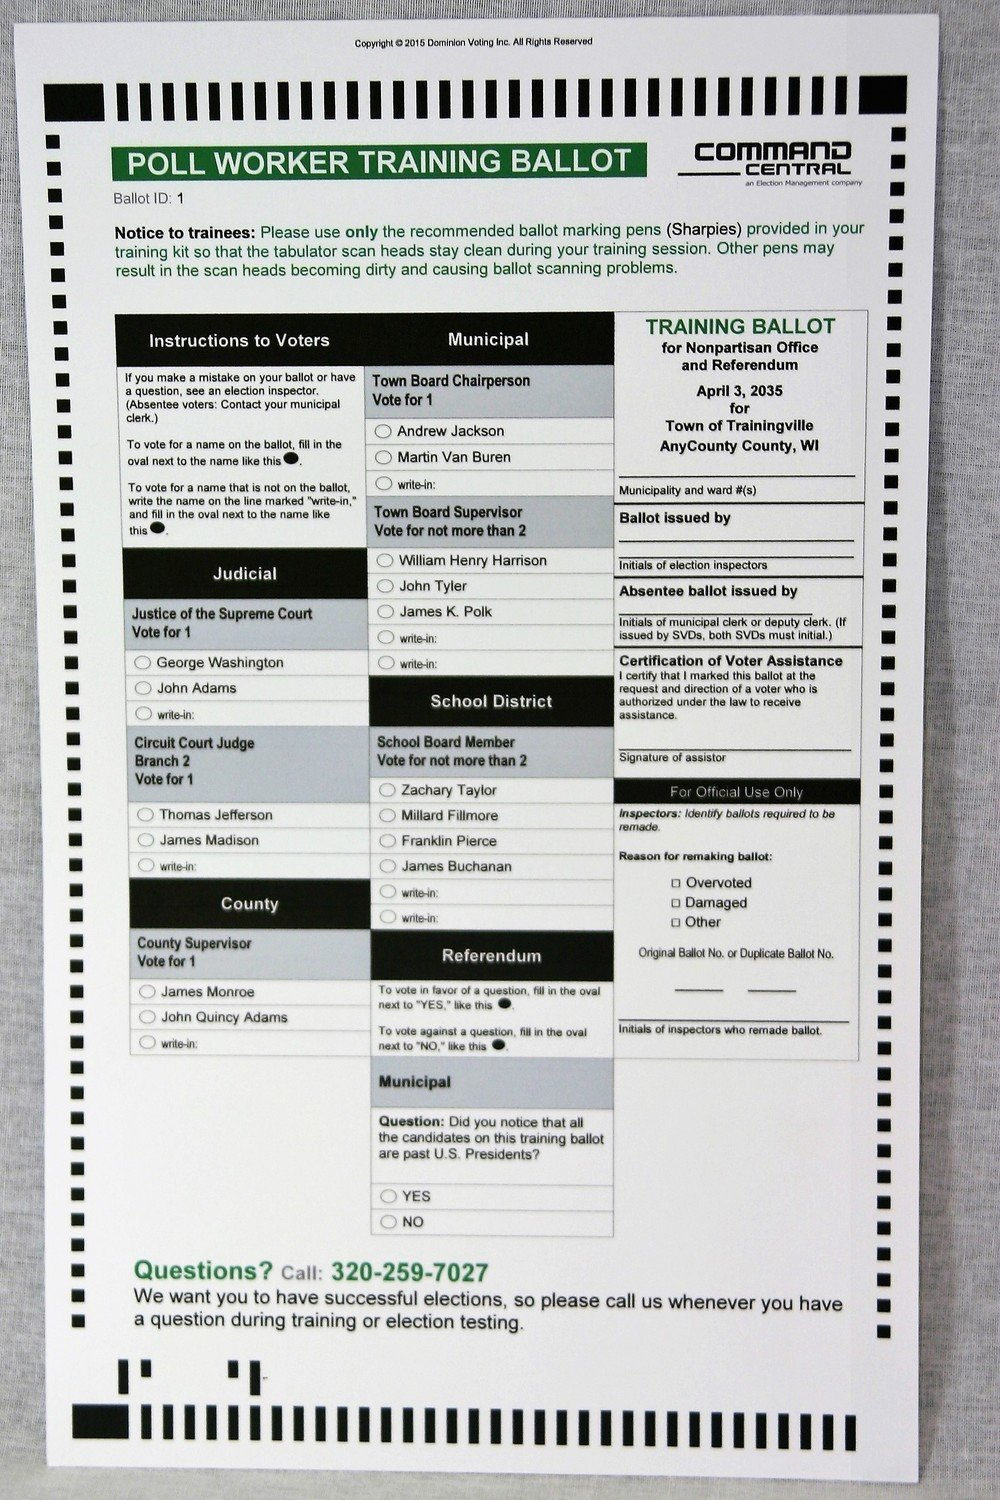 Blank Test Ballots (ICE - Pack of 50)